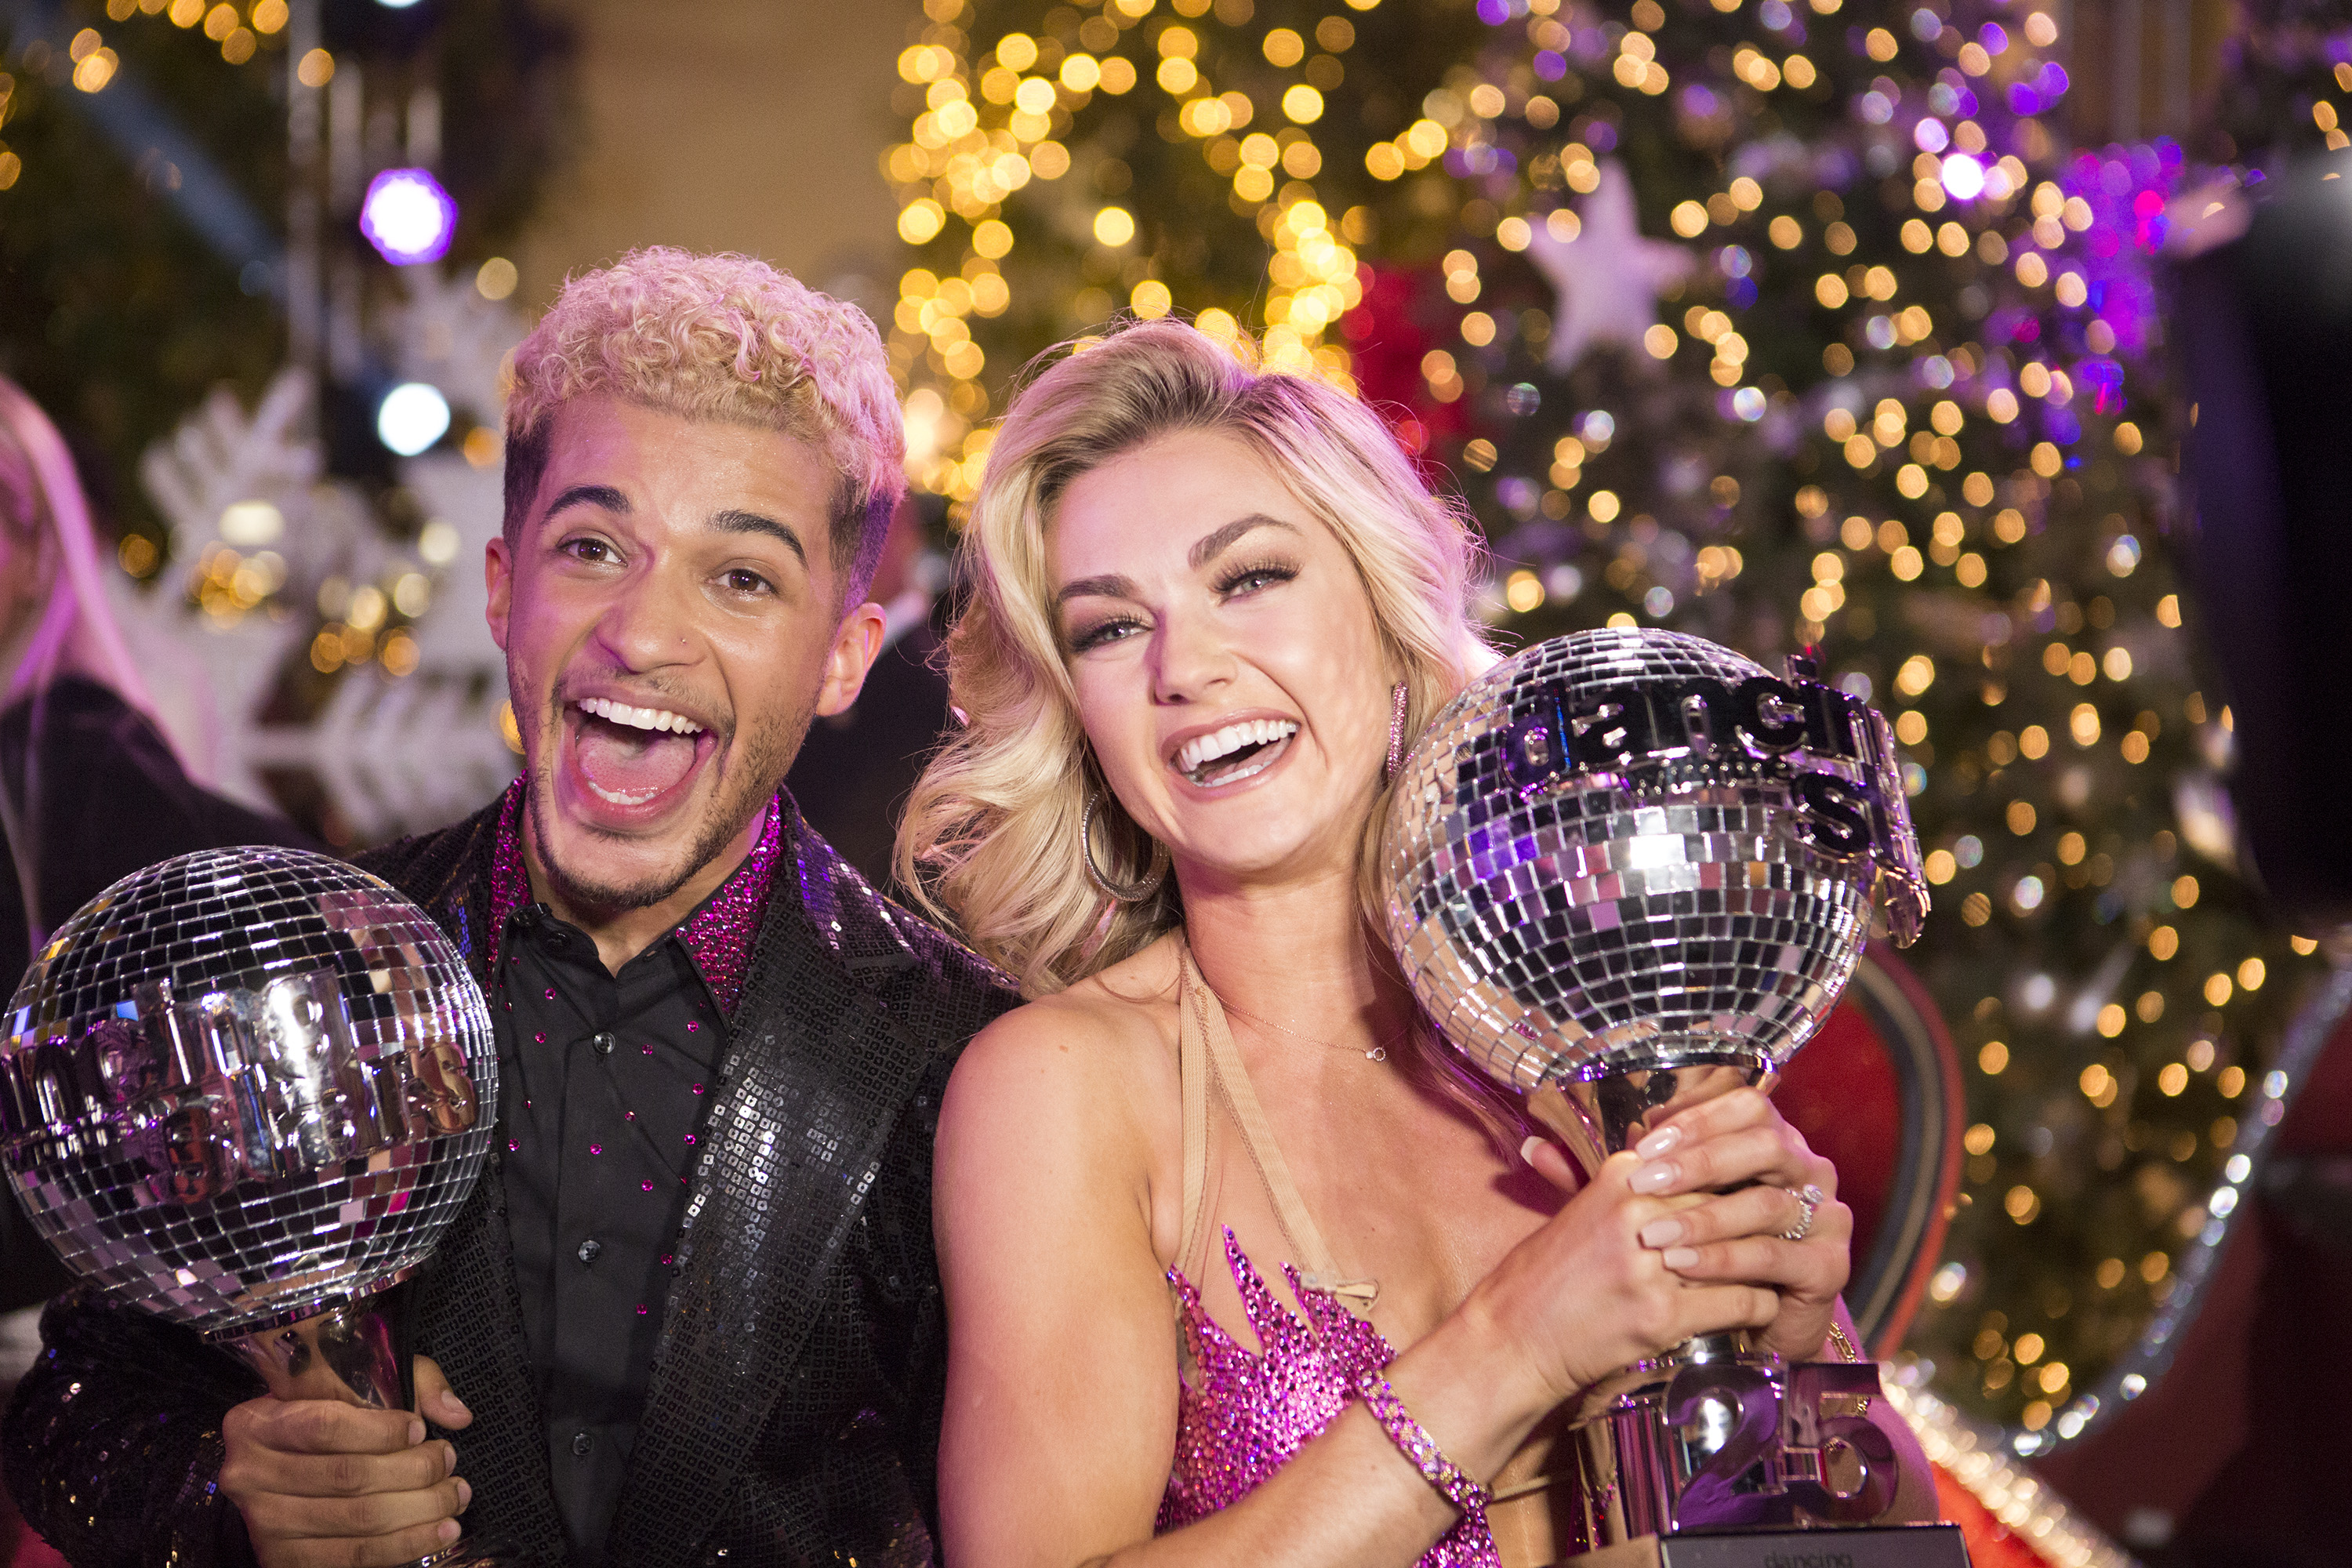 dancing with the stars season 27 premiere date announced | dancing